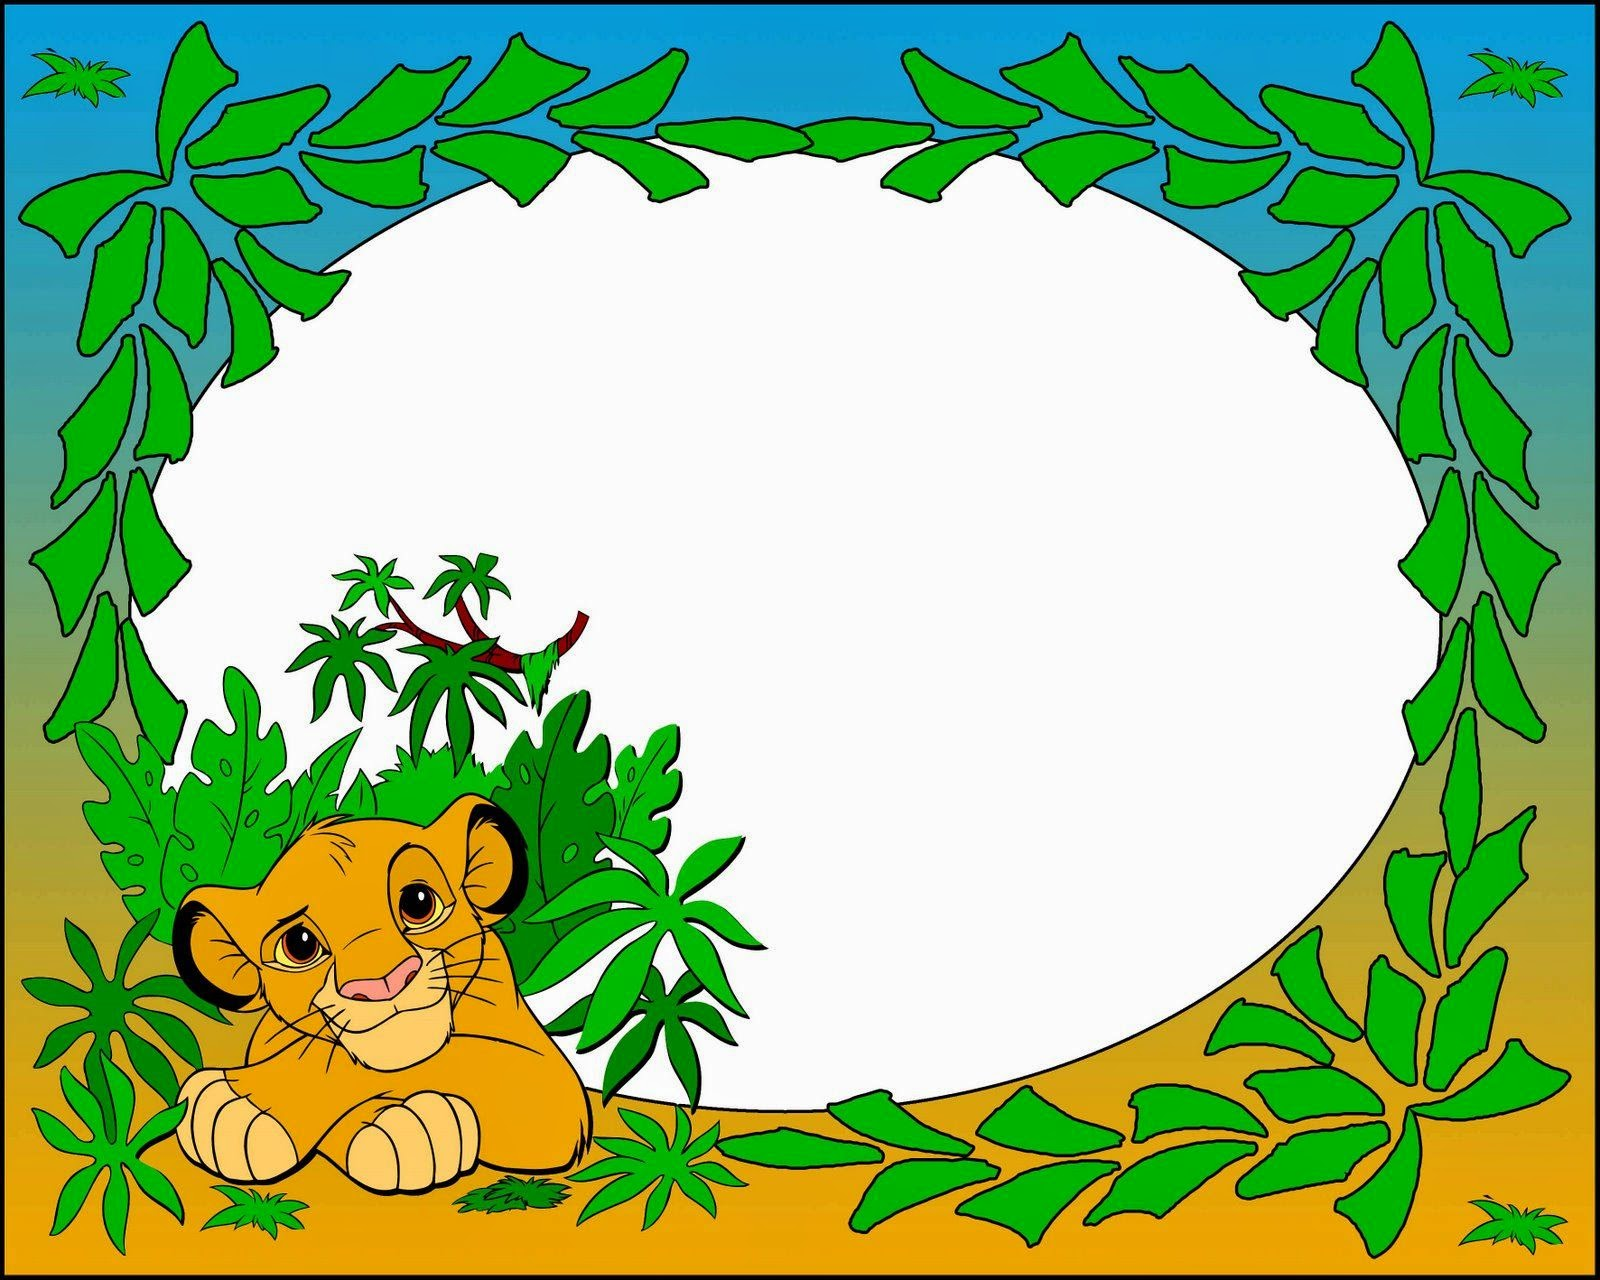 The Lion King Free Printable Invitations Backgrounds Or